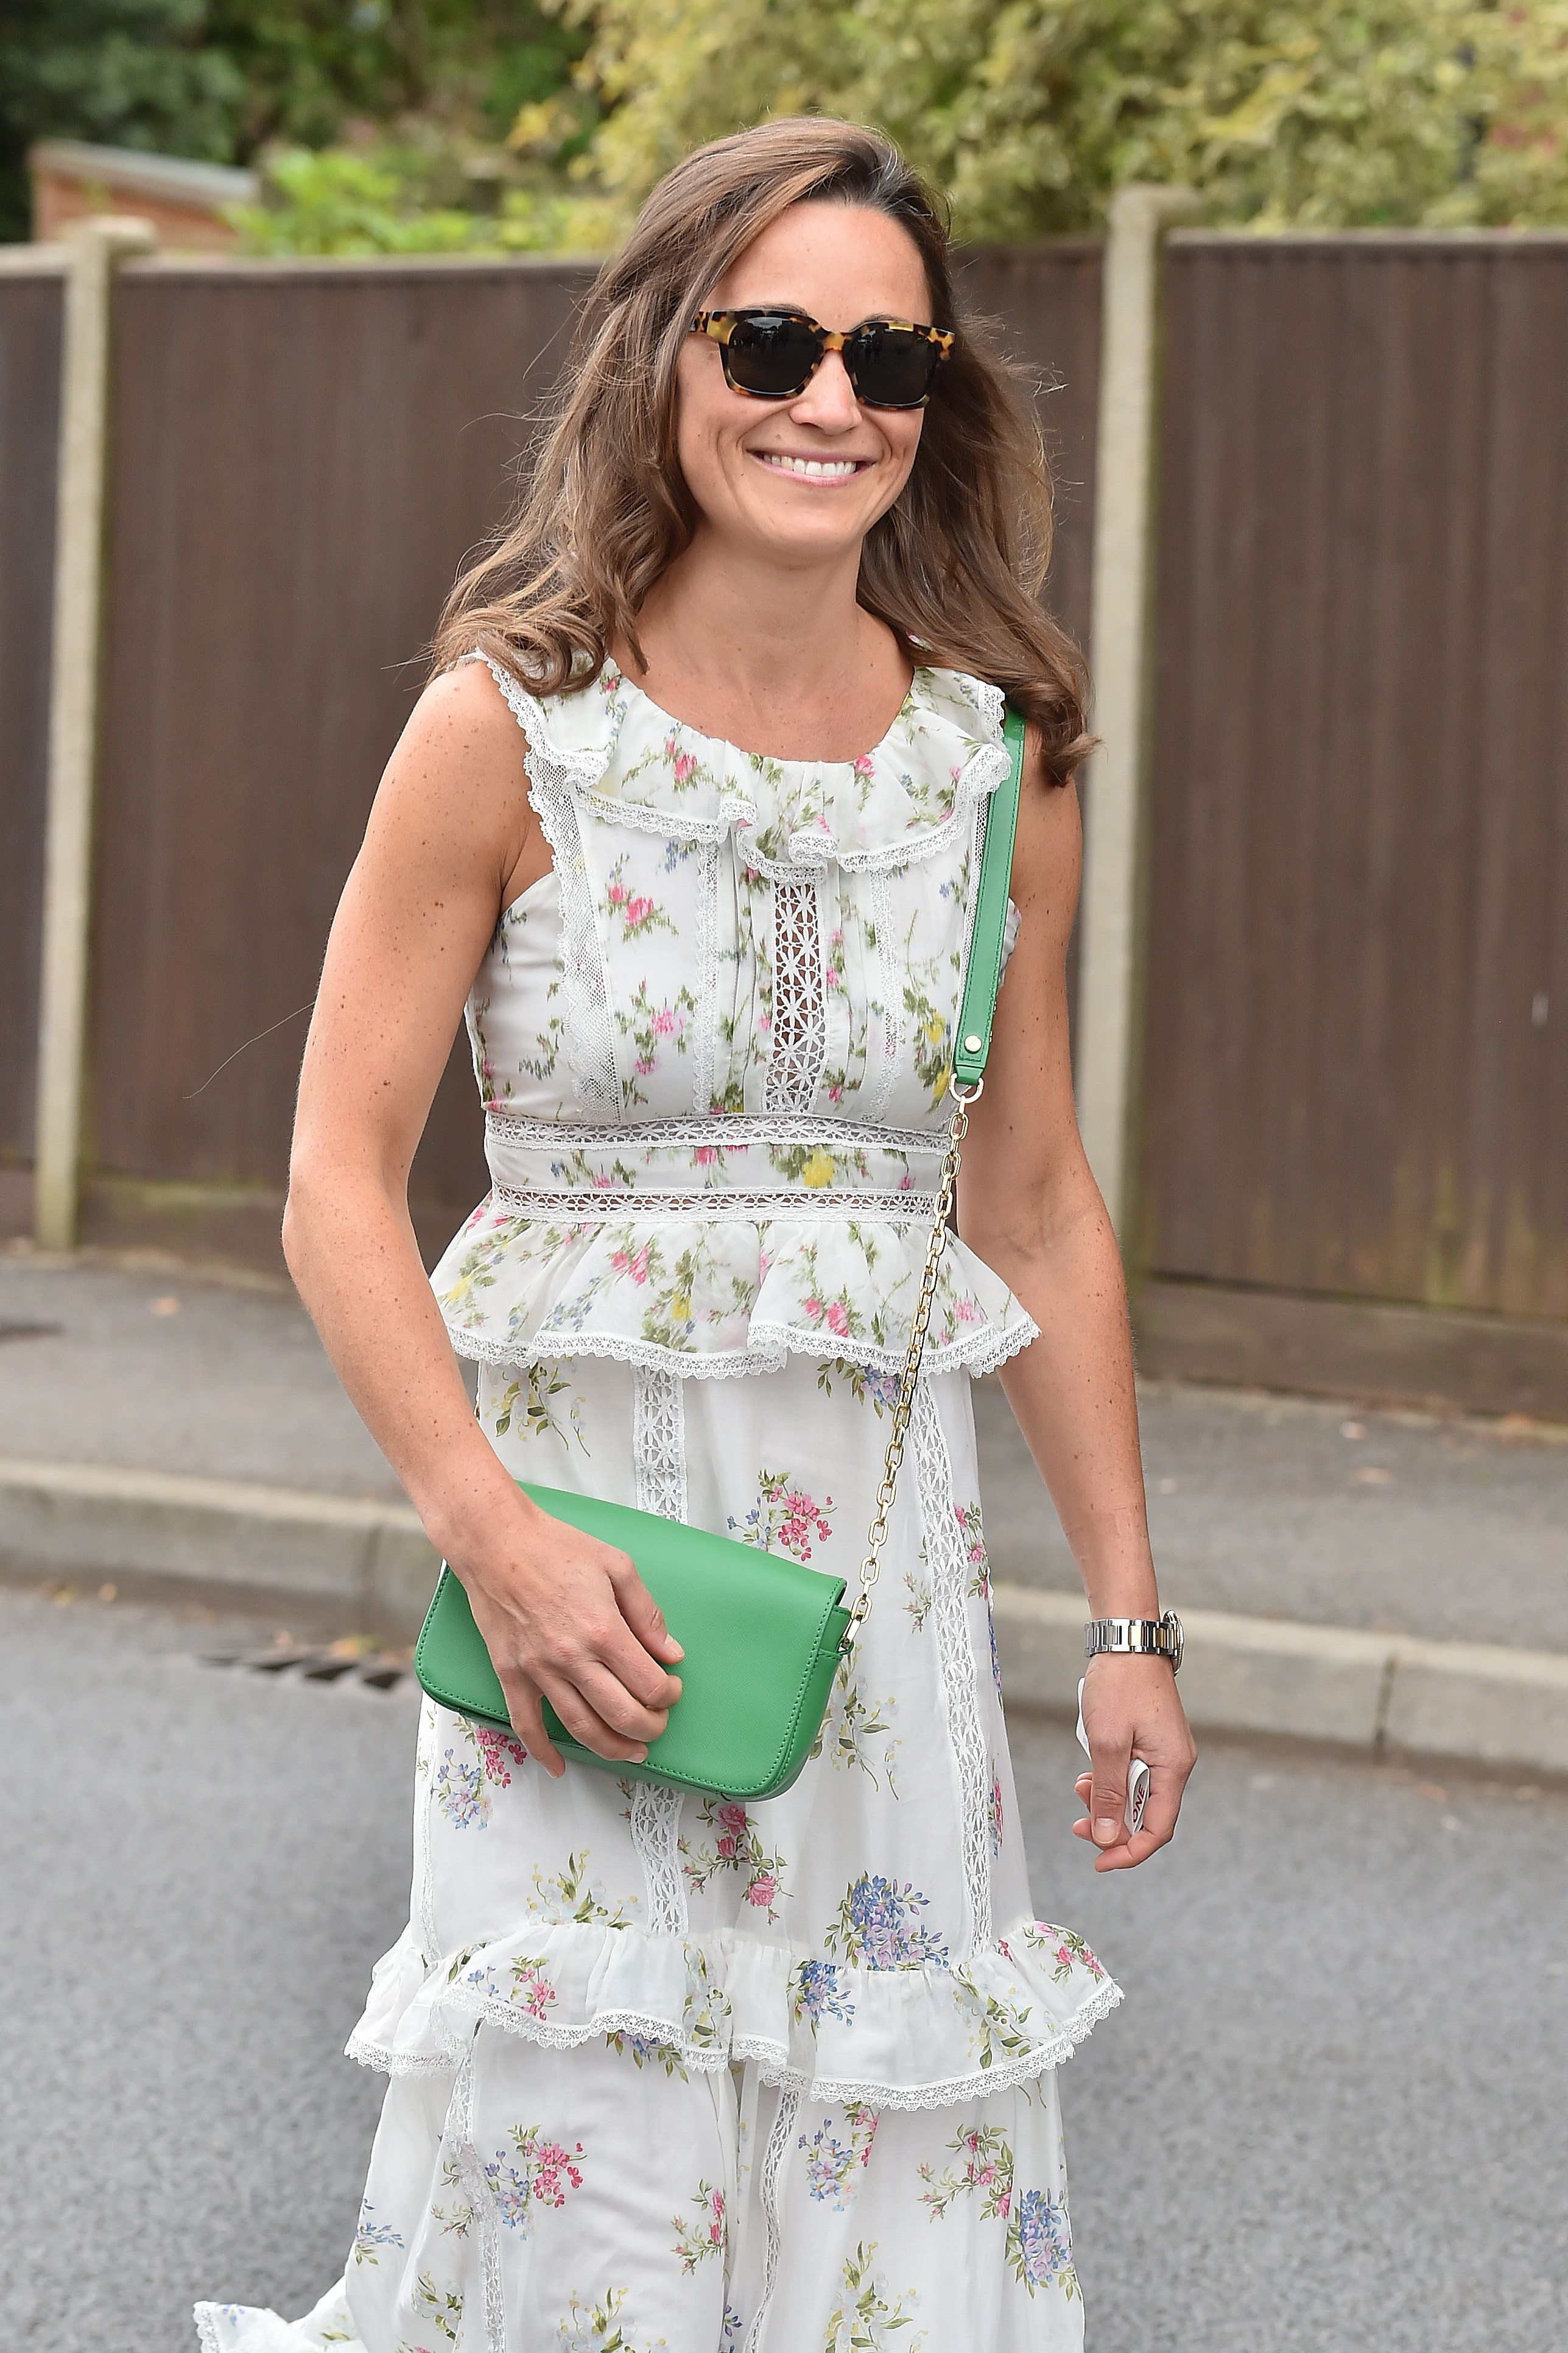 Pippa Middleton Looks Lovely In A Tiered Floral Dress For The Final Day Of